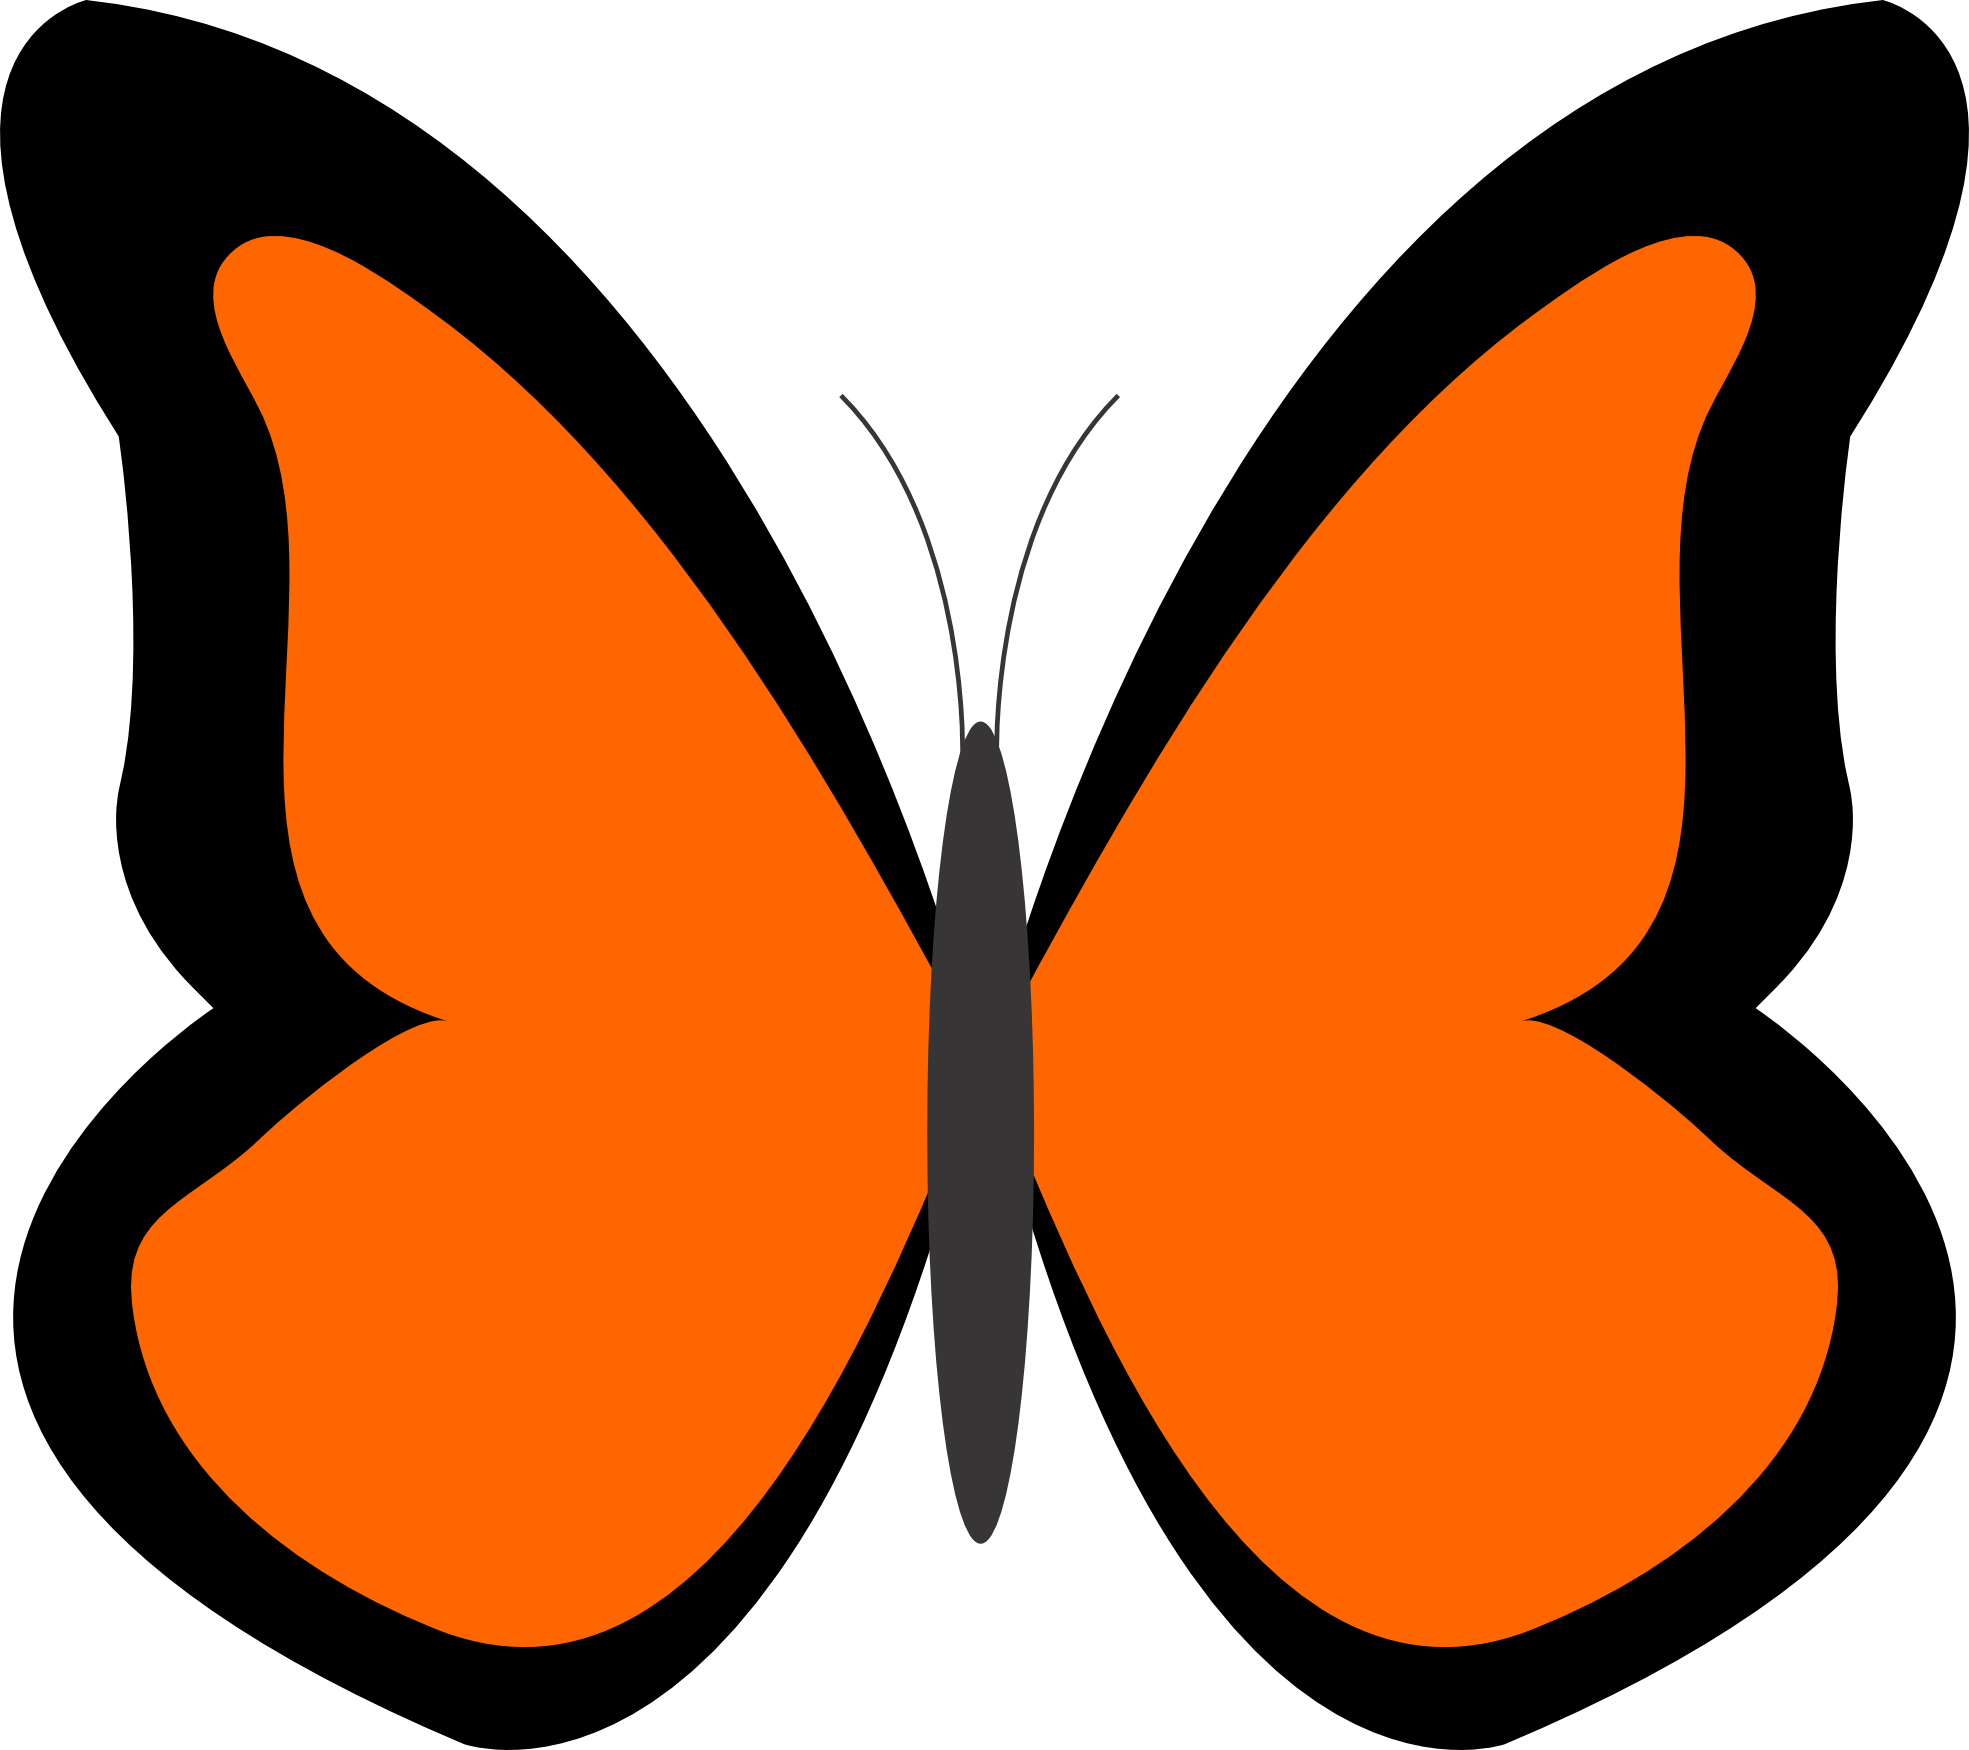 Butterfly images clip art.